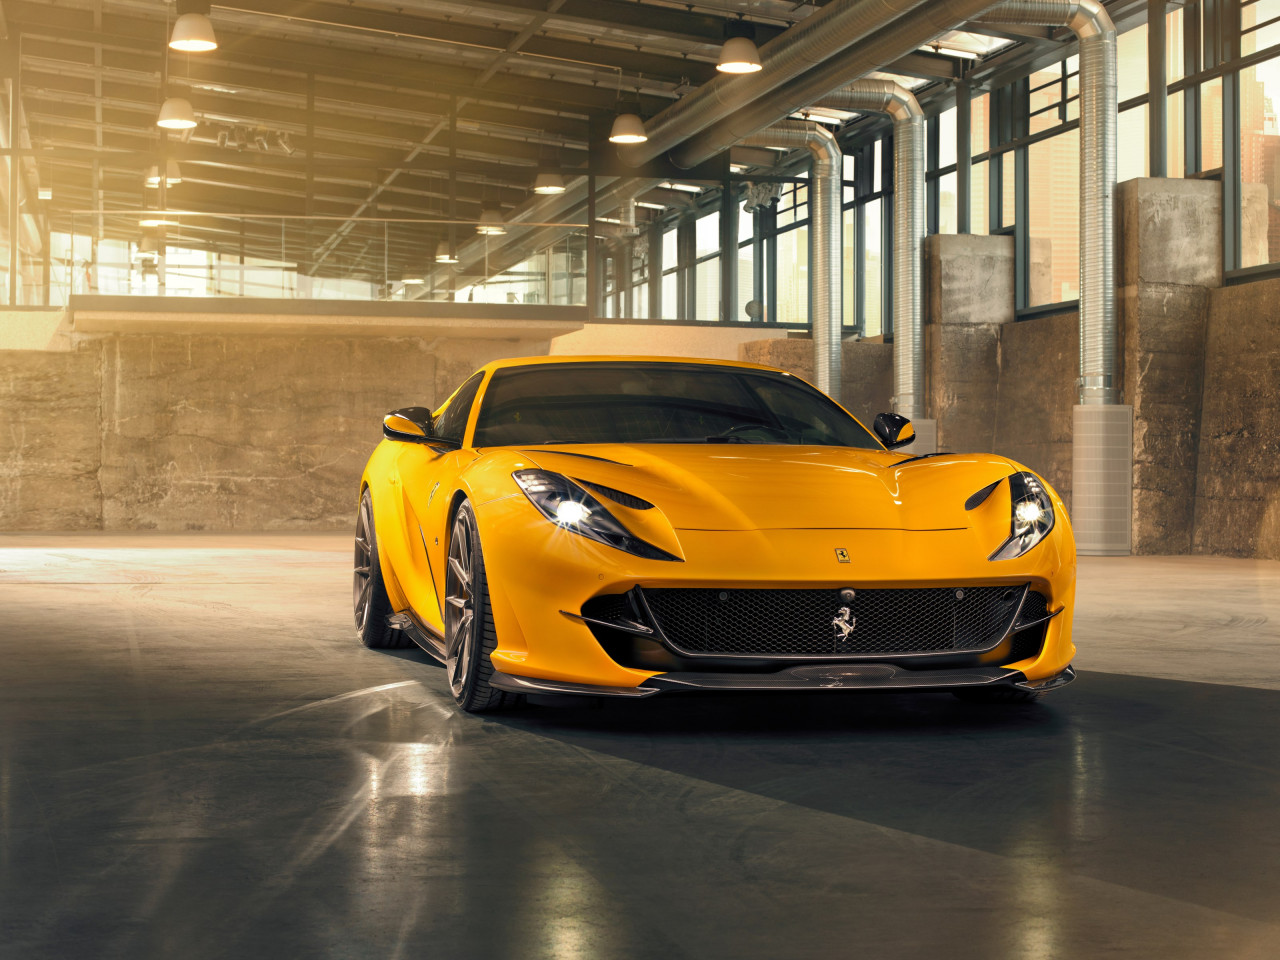 Ferrari 812 Superfast wallpaper 1280x960